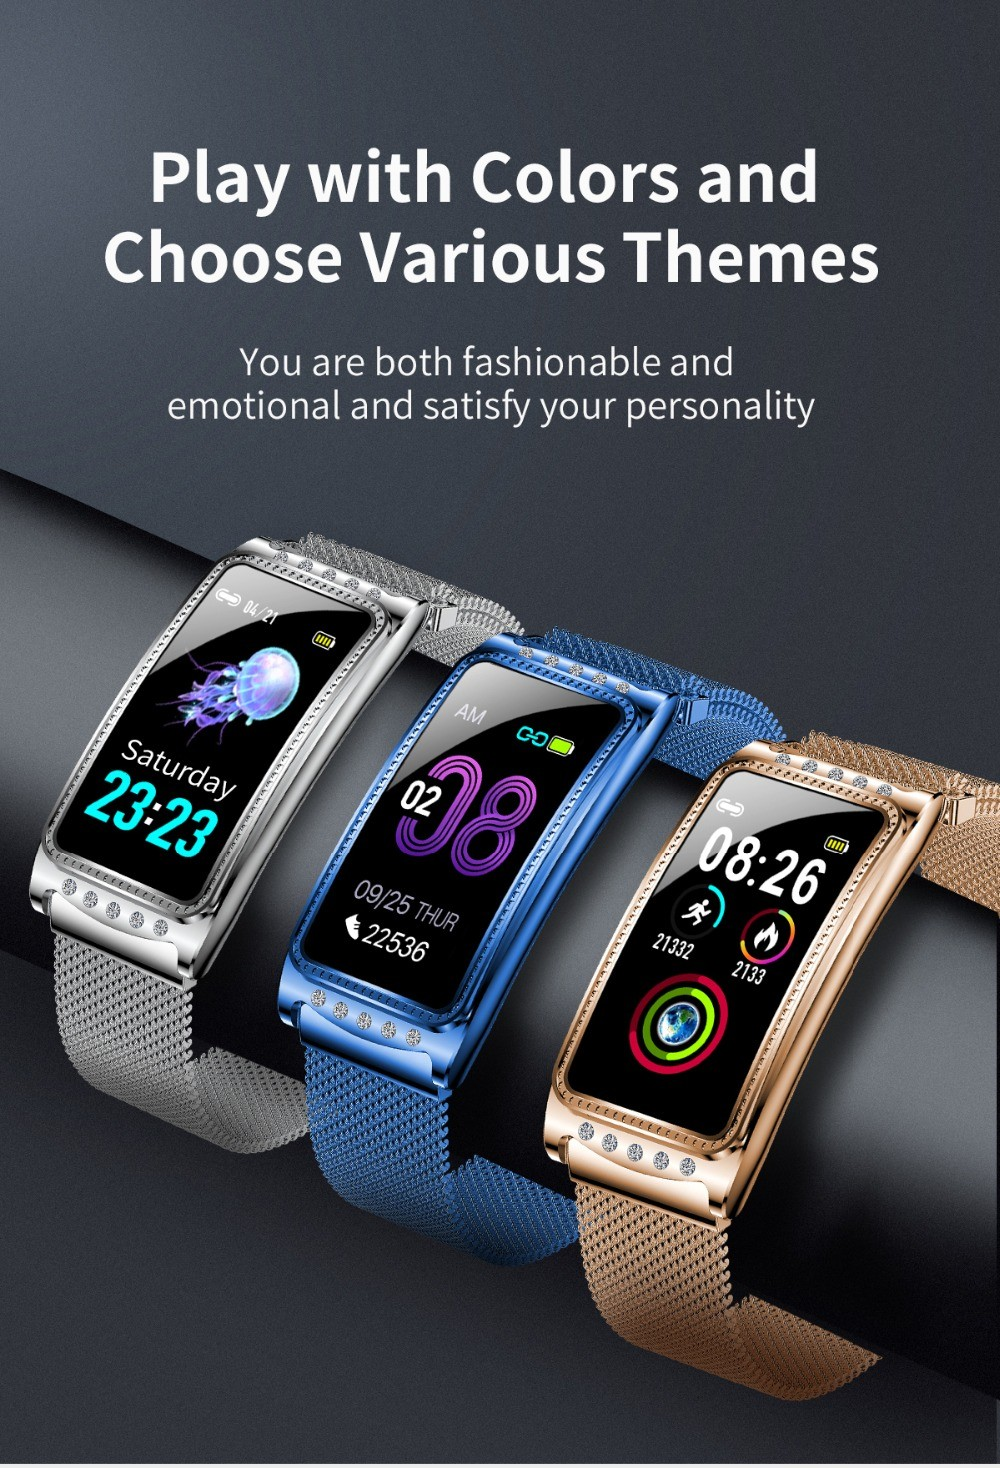 F28 Smart Bracelet Wristband Play with Colors and Choose Various Themes